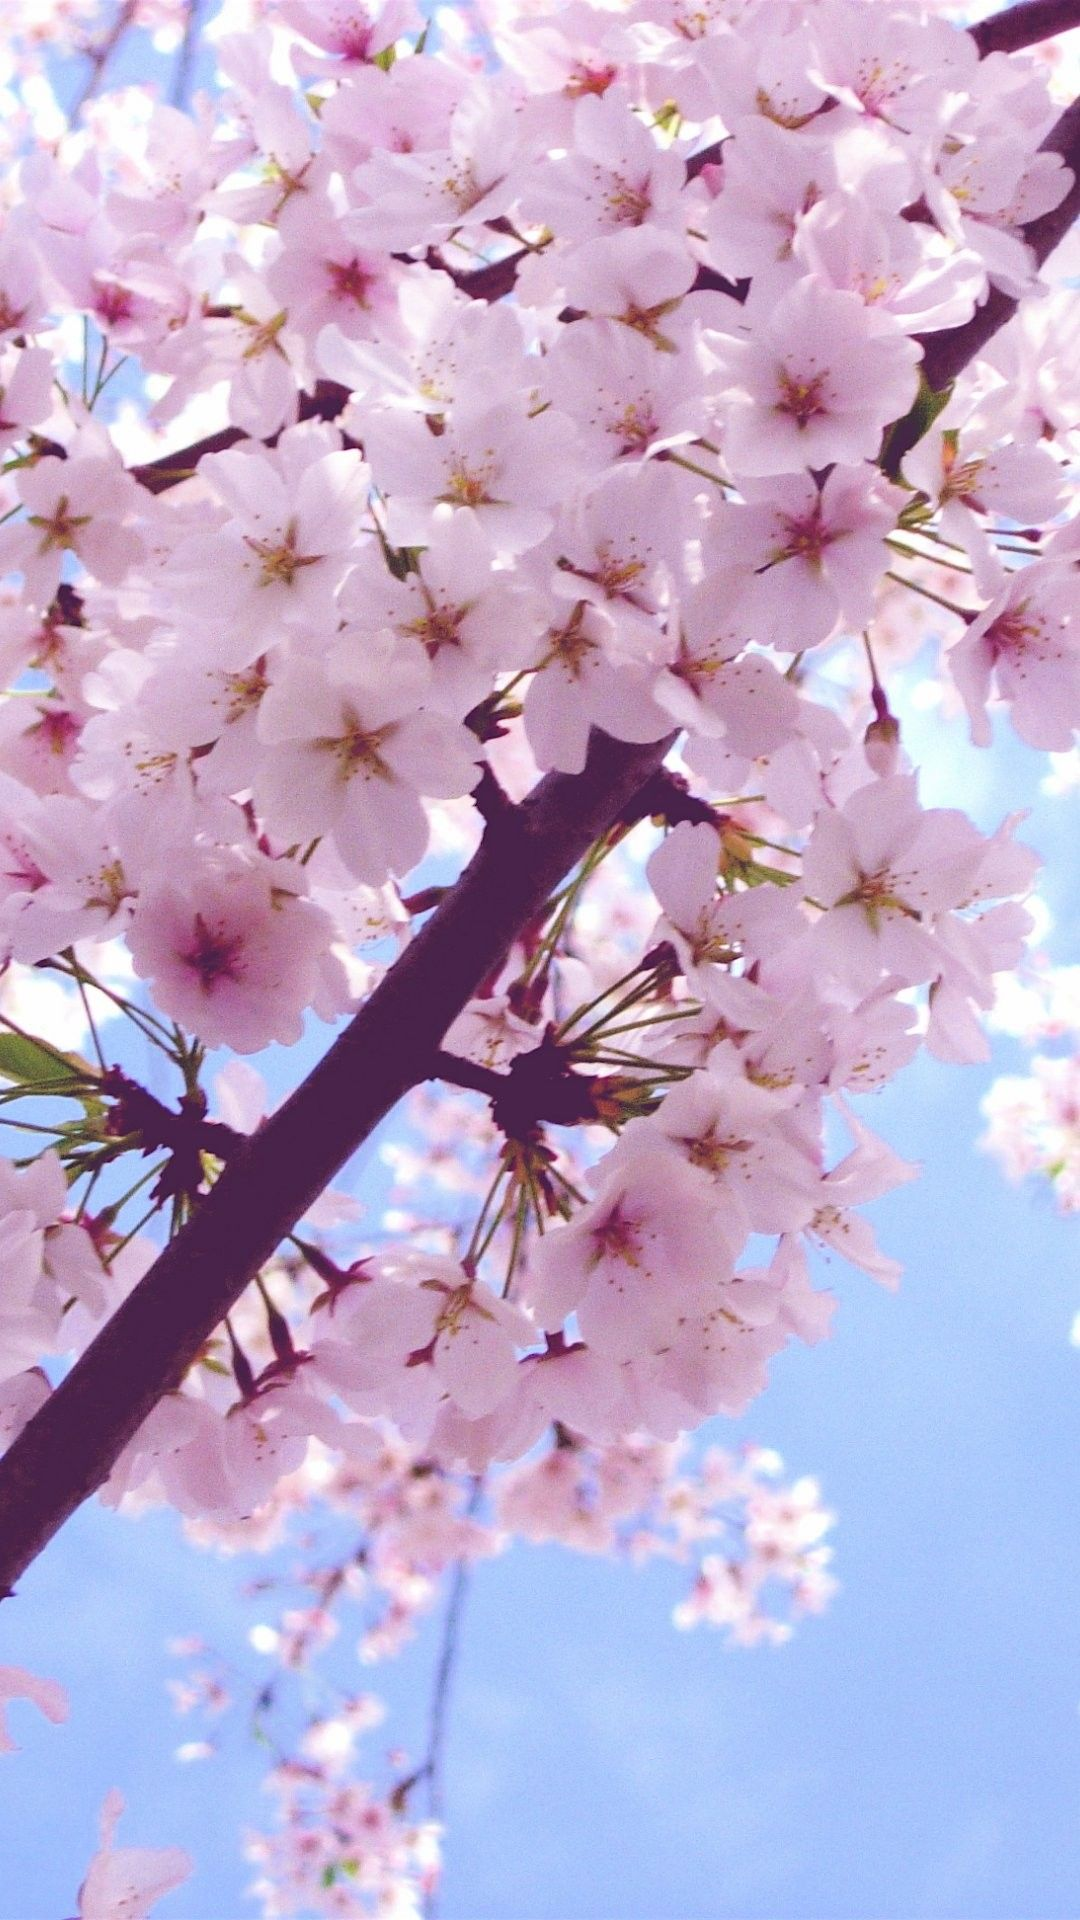 Tumblr iphone 6 plus wallpaper - Cherry Blossom Iphone 6 Plus Wallpaper 6556 Flowers Iphone 6 Plus Wallpapers